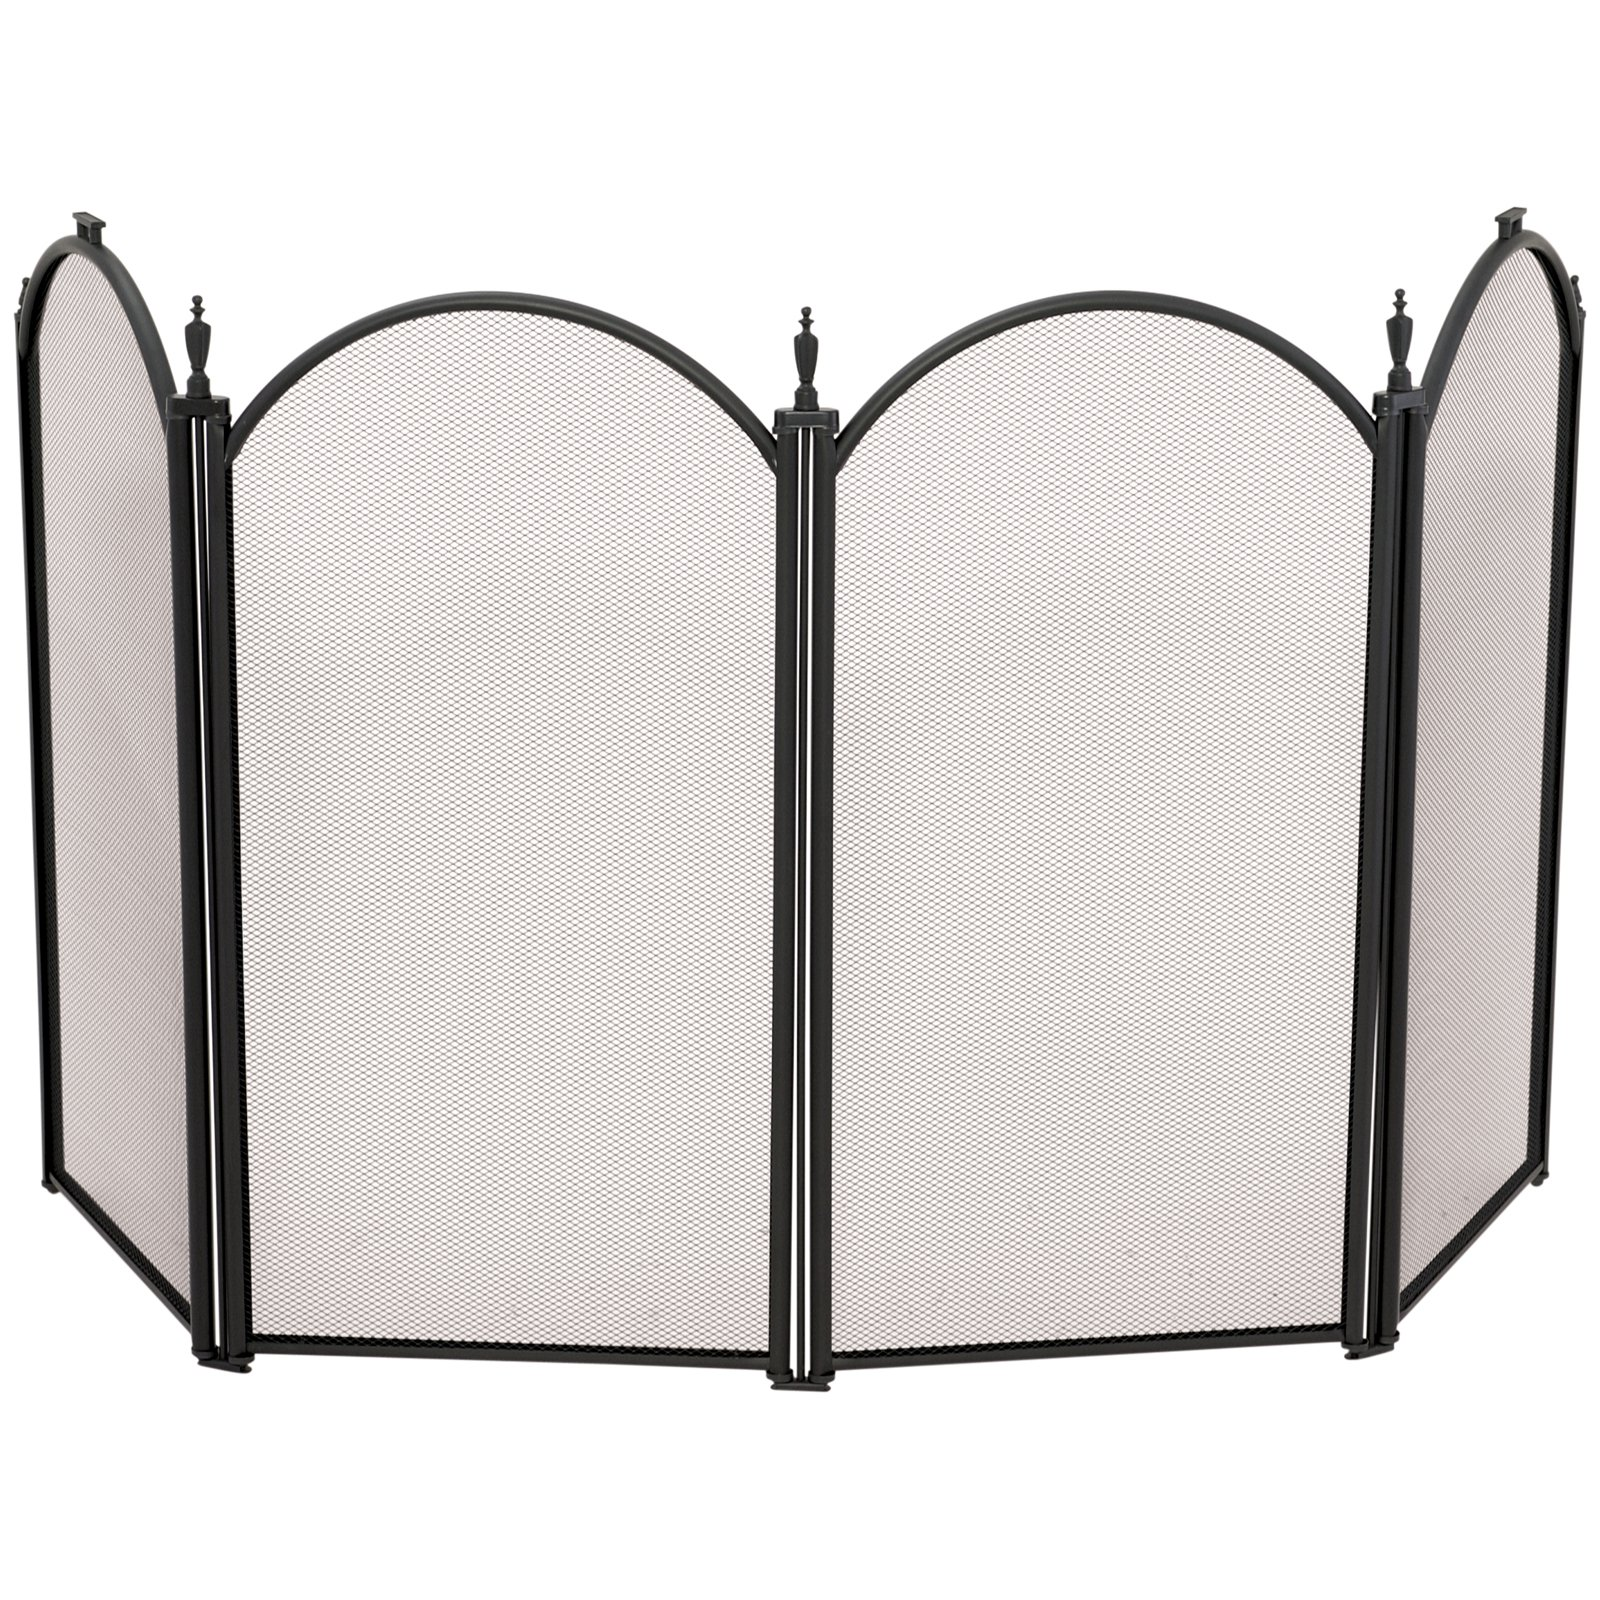 fireplace screens free with fireplace screens free arch top